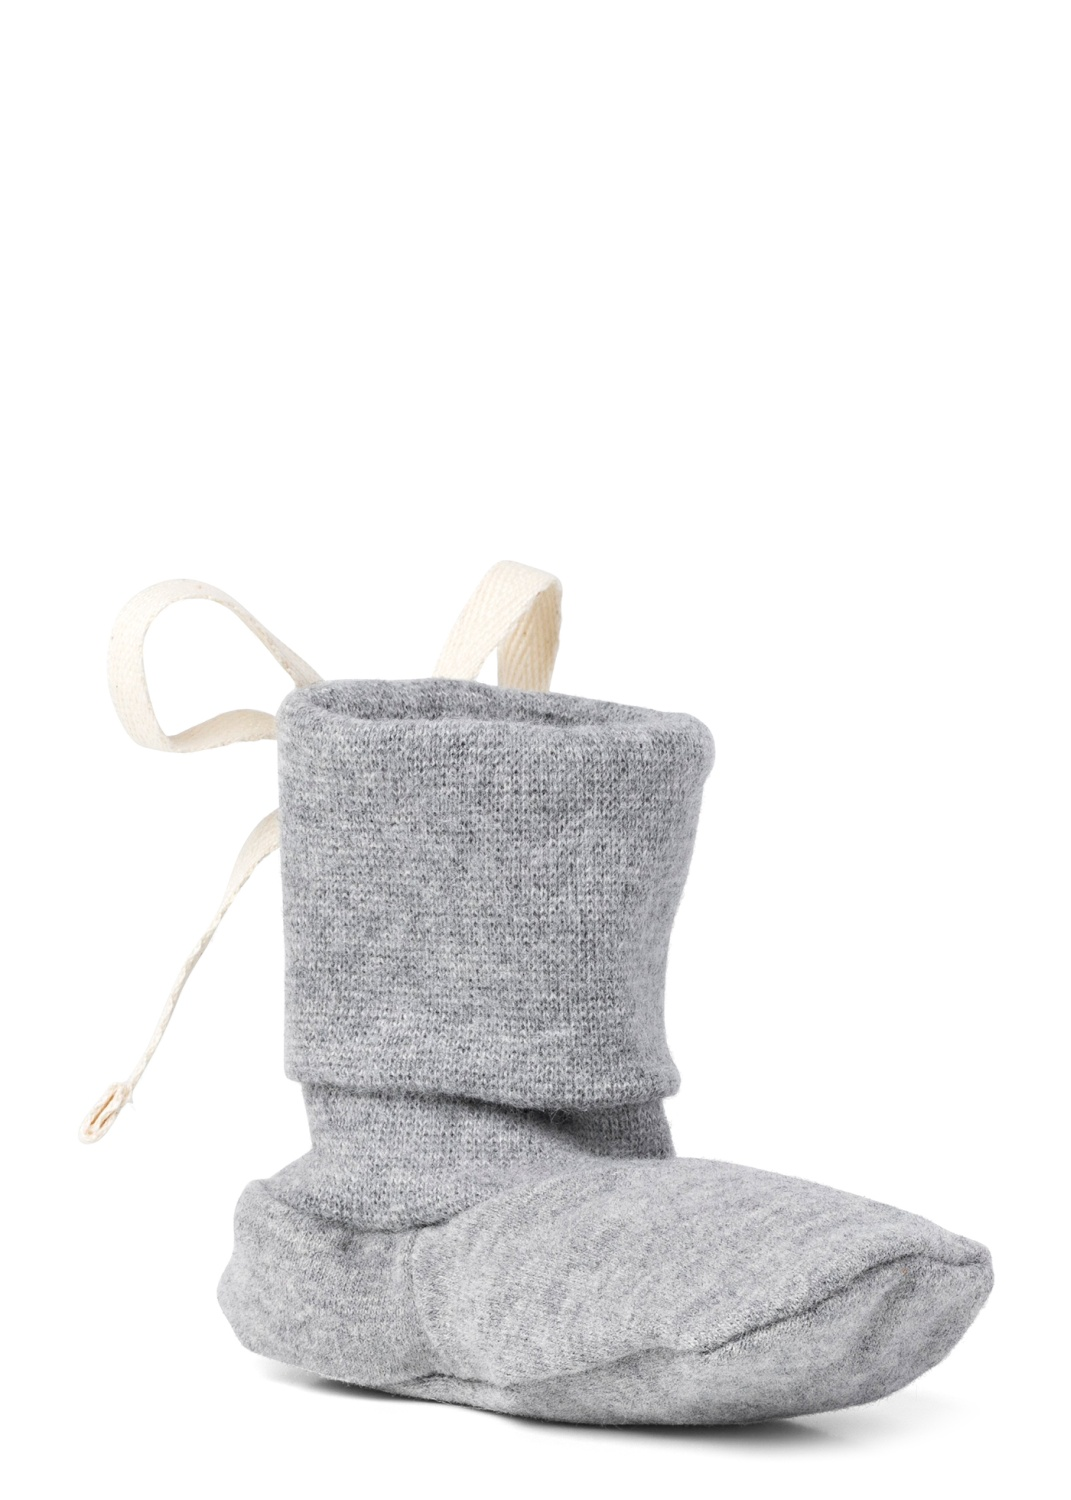 Baby Ribbed Booties image number 1